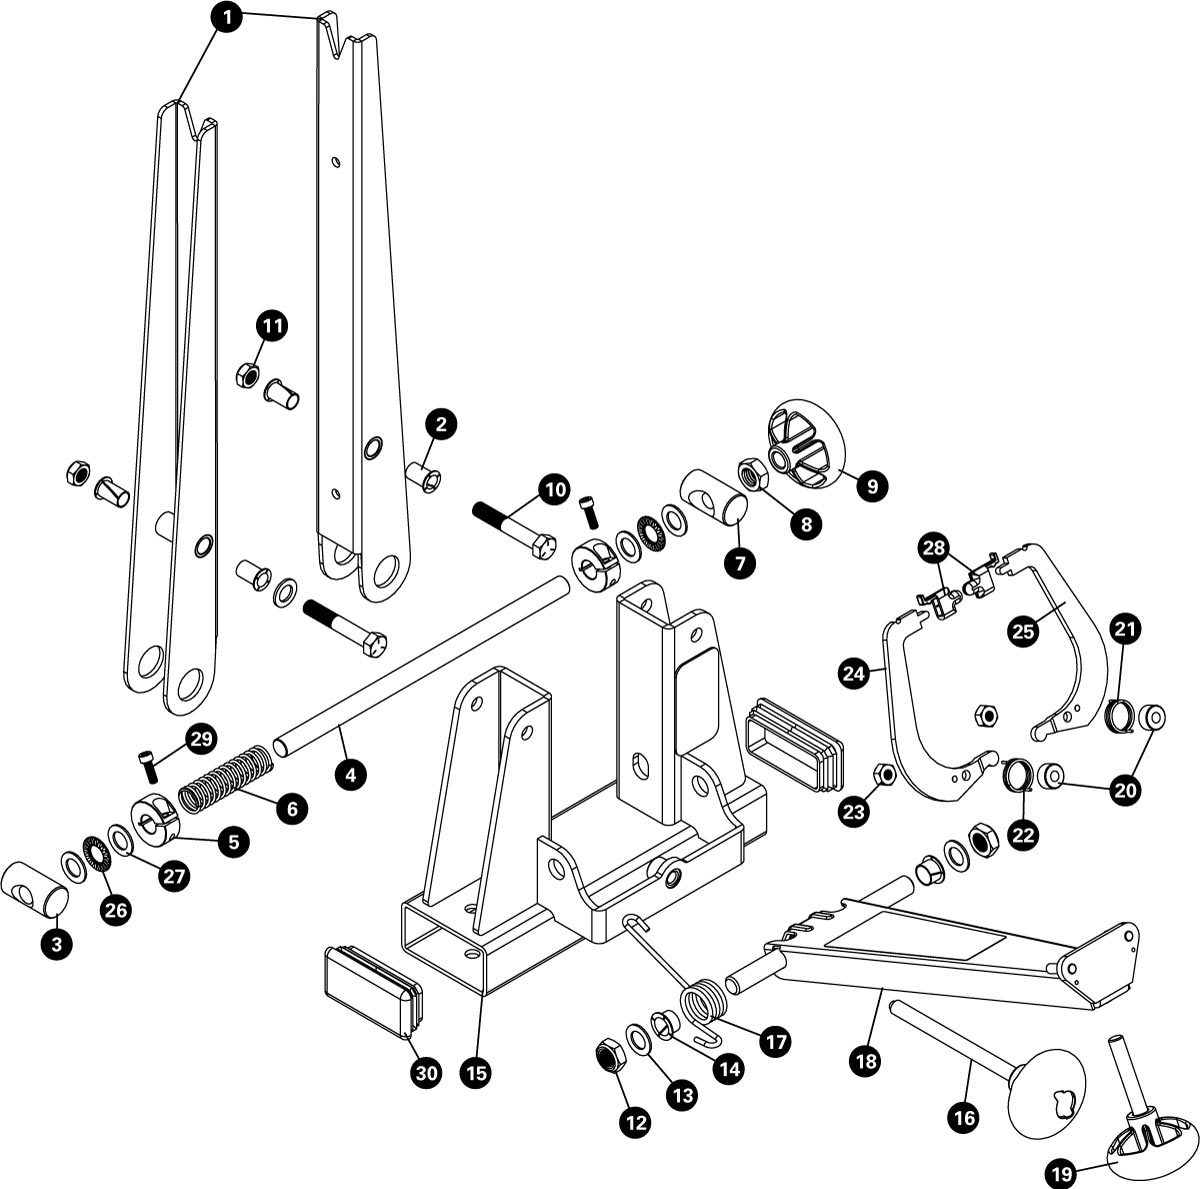 Parts diagram for TS-2.2 Professional Wheel Truing Stand, click to enlarge